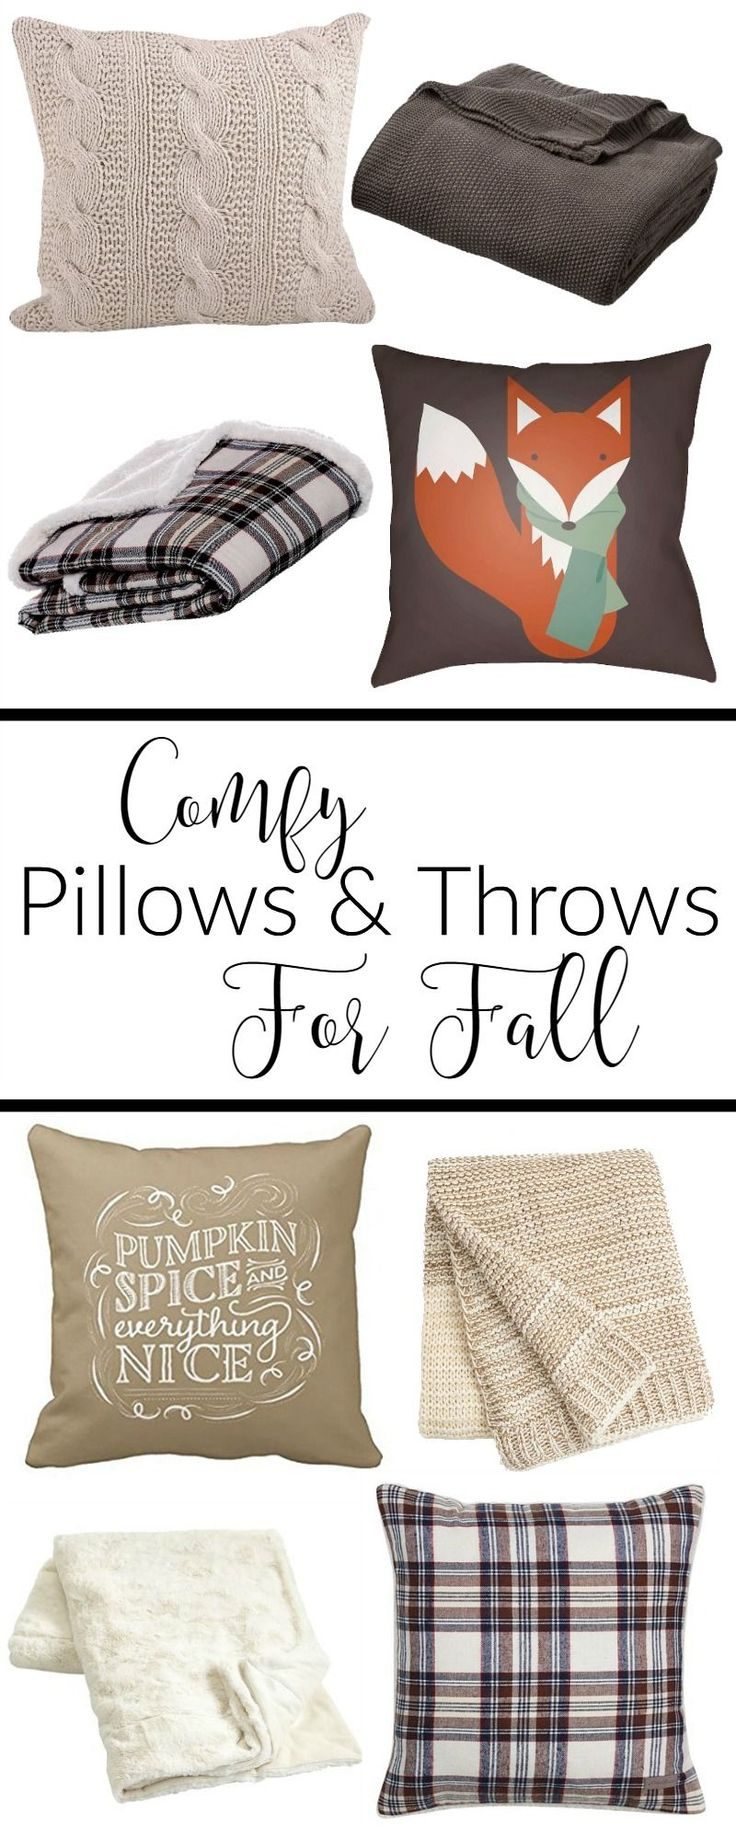 The most comfy pillows and throws perfect for Fall decorating